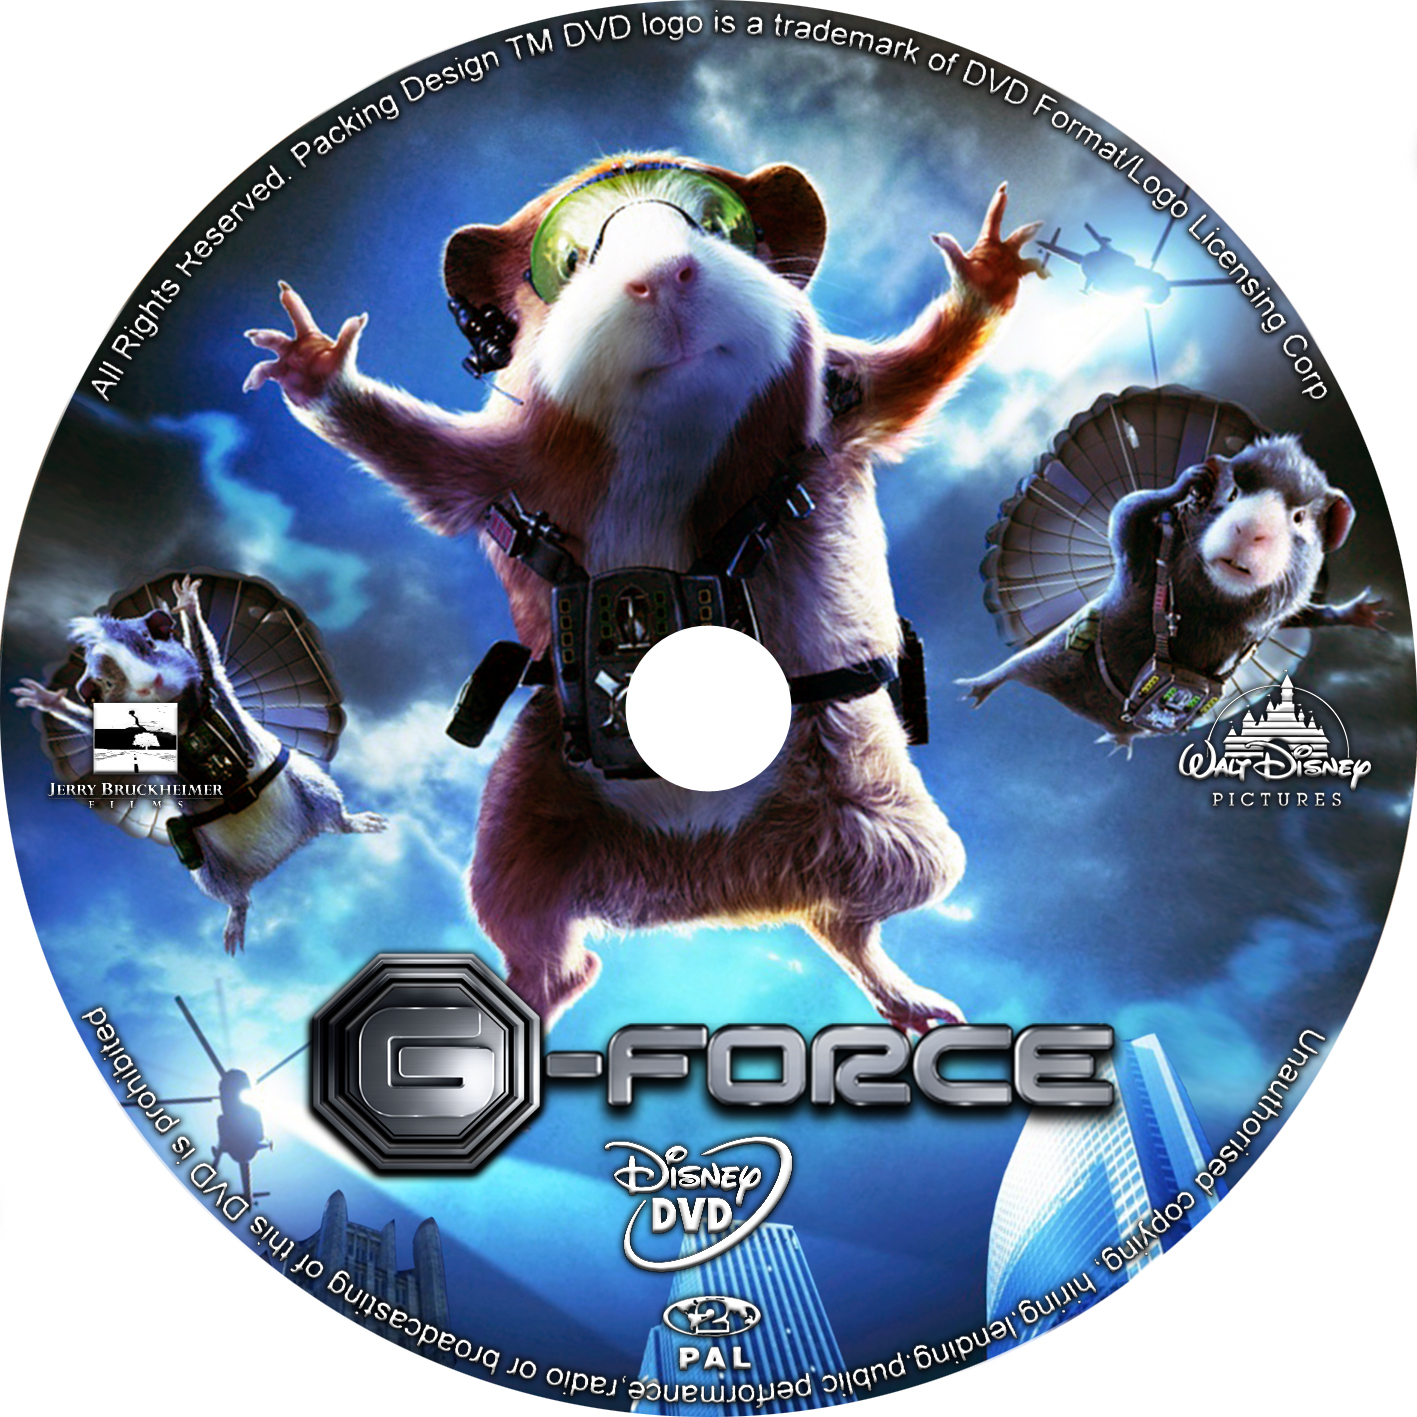 Covers Box Sk G Force 2009 High Quality Dvd Blueray Movie